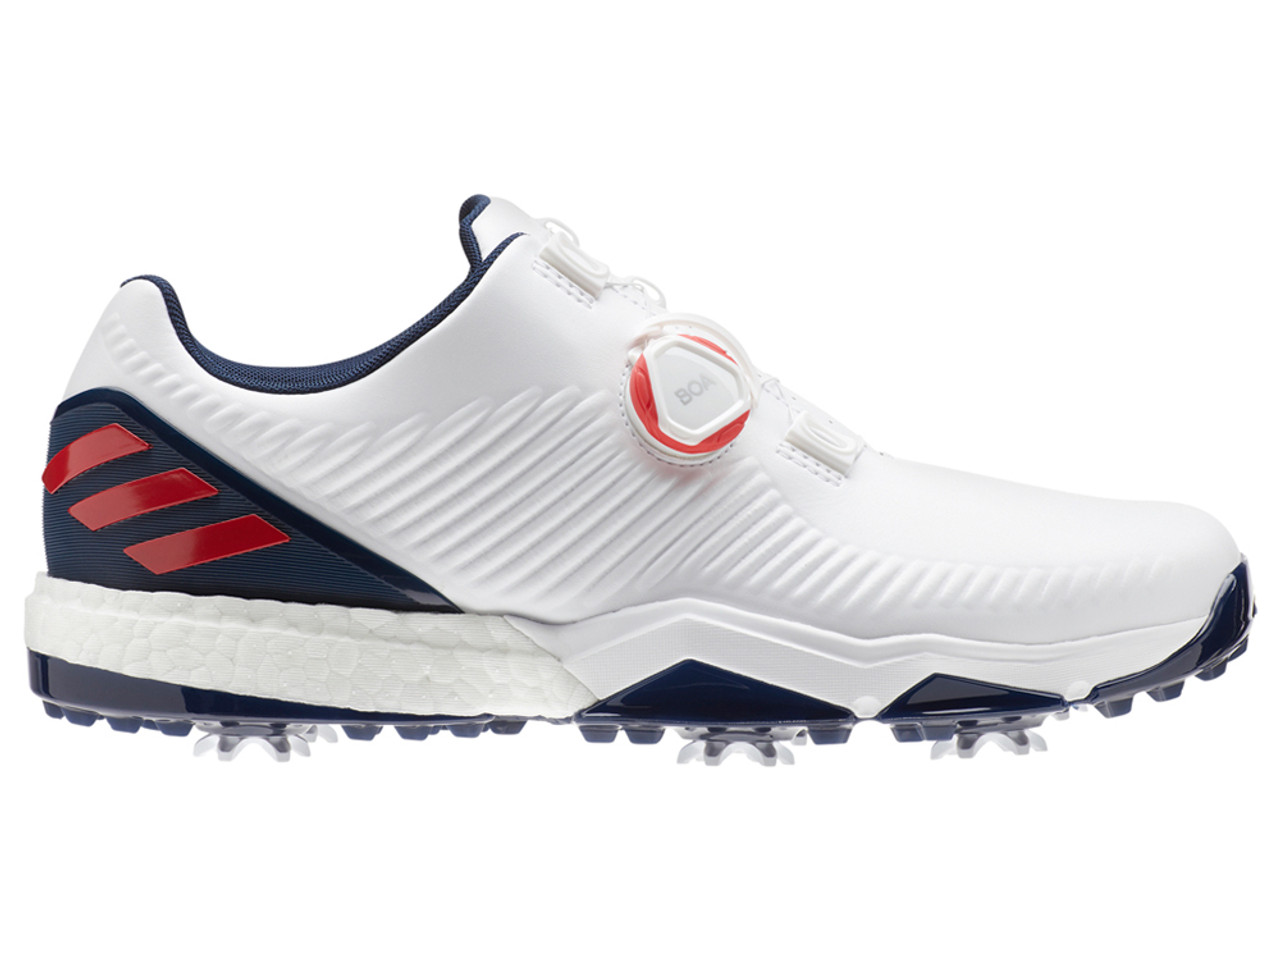 detailed look 1a1ad 82f37 Adidas Adipower 4orged BOA Golf Shoes - FTWR WhiteColl Navy